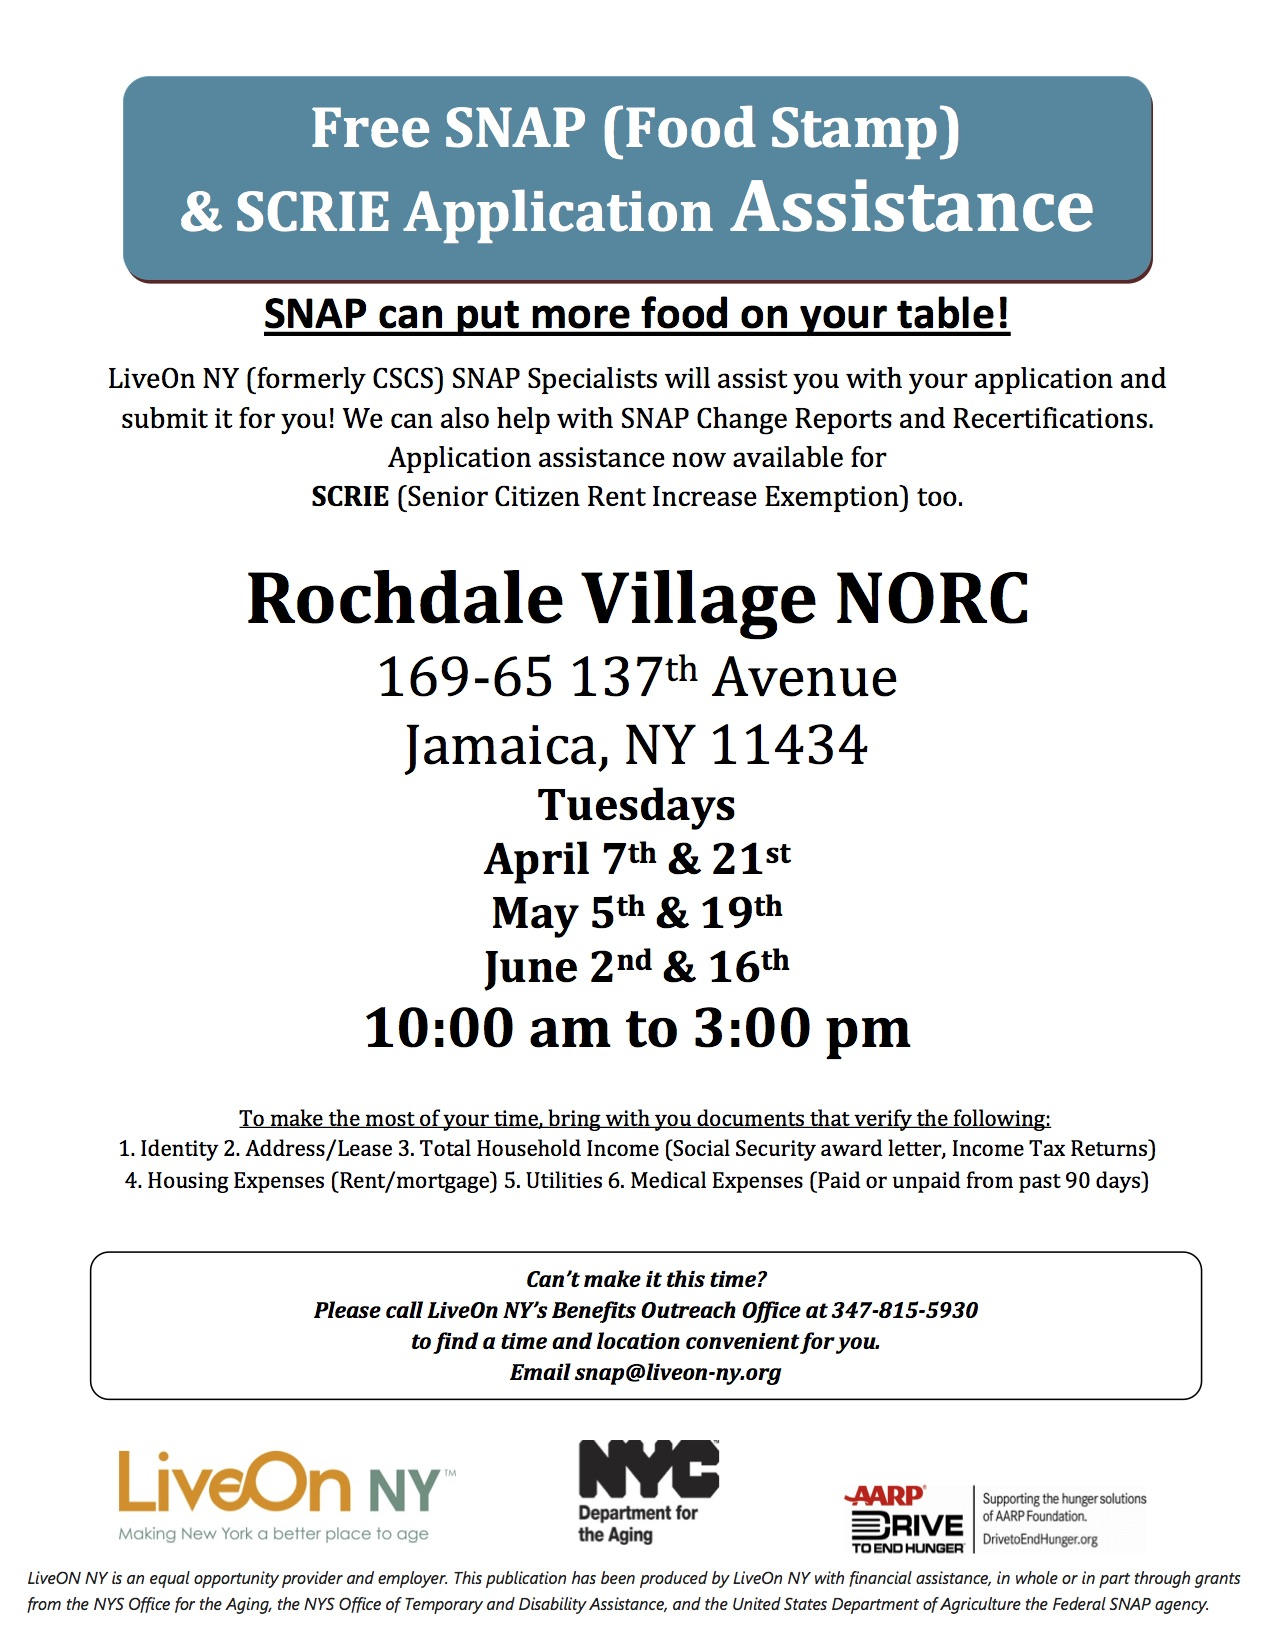 Free SNAP And SCRIE Application Assistance